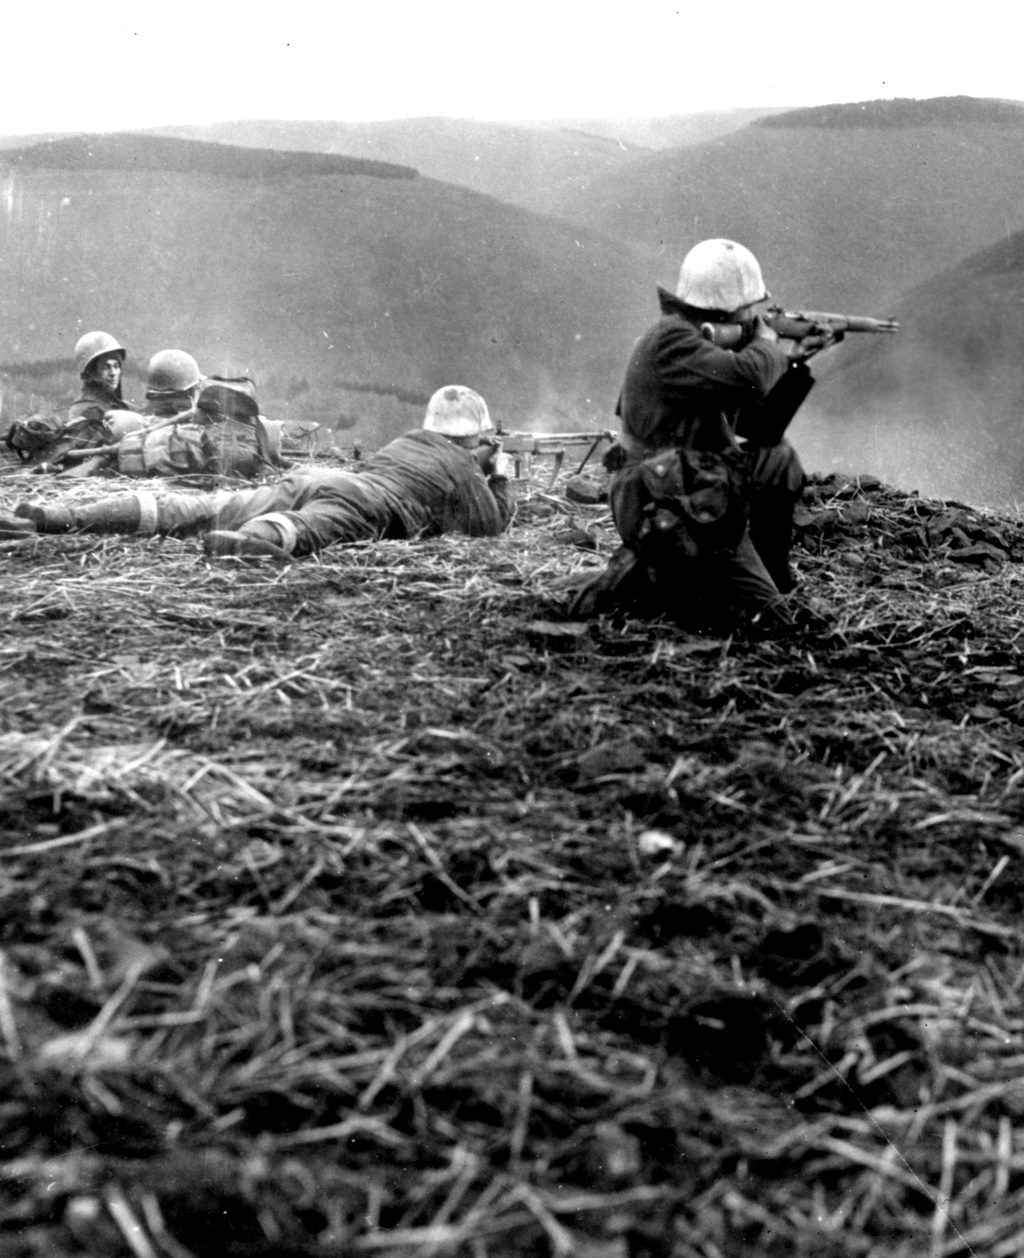 US soldiers from the 9th Infantry Division crouching and lying in prone position while shooting at enemy forces on a hilltop. Morsbach-Germany